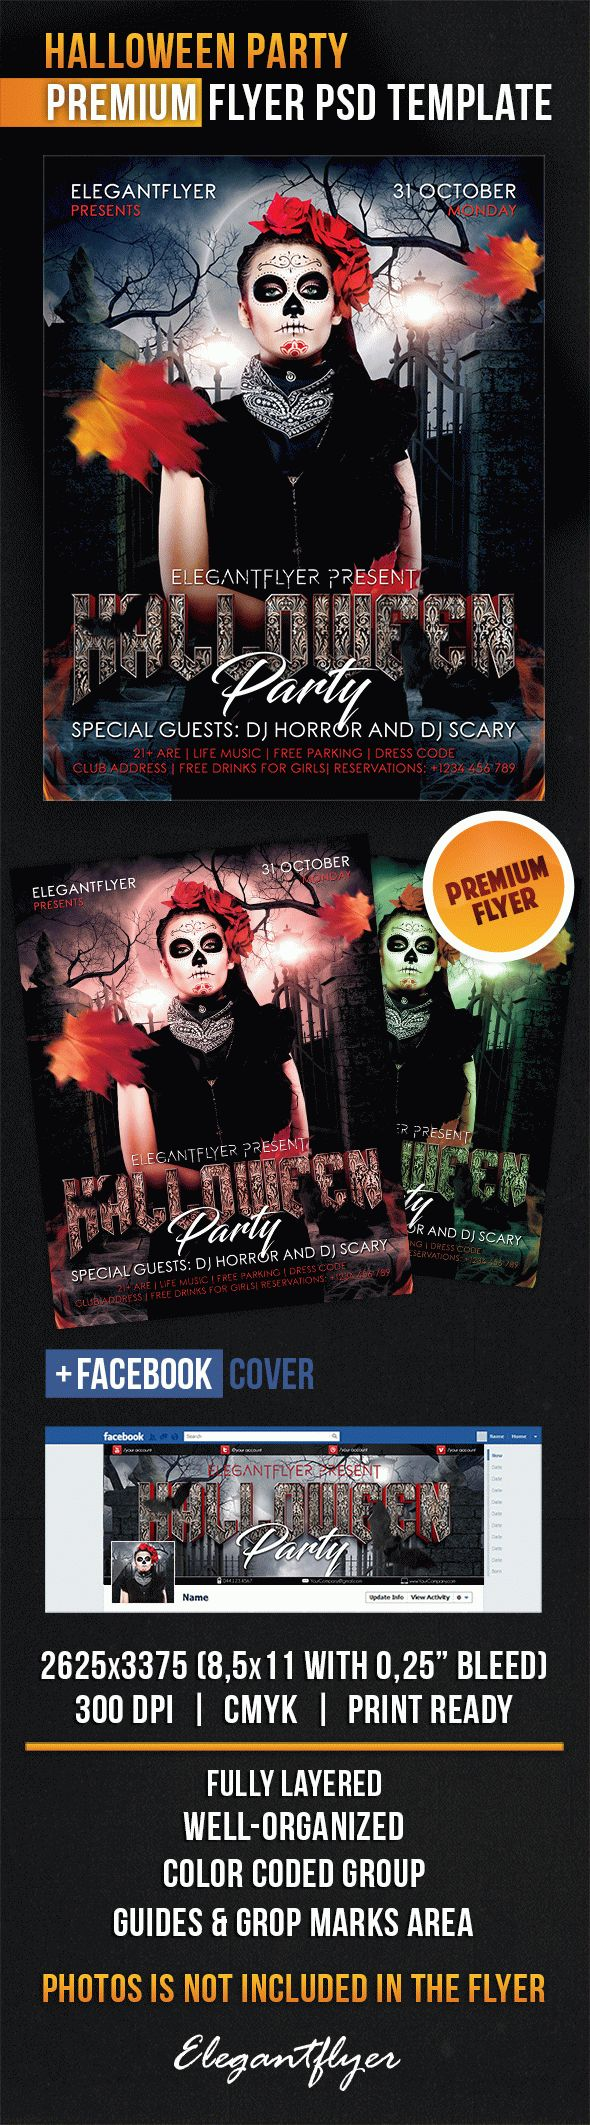 Party City Halloween Template